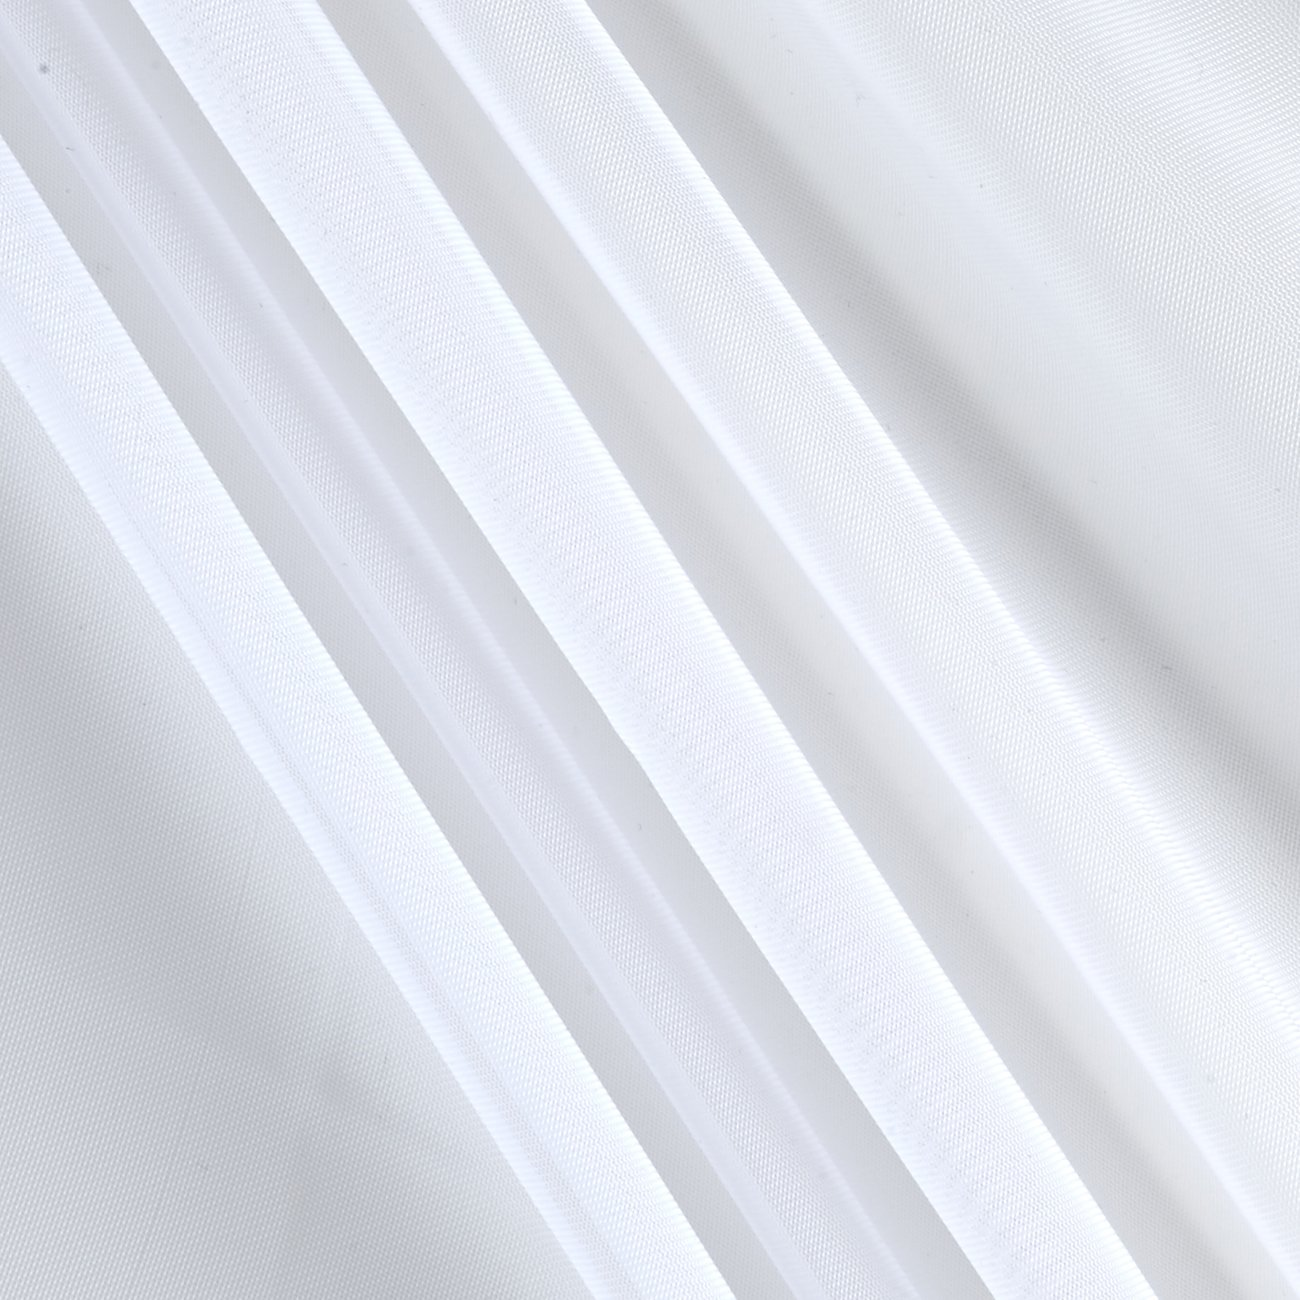 Ben Textiles 120In Sheer Voile Fabric by The Yard, White Ben Textiles Inc. 0448619